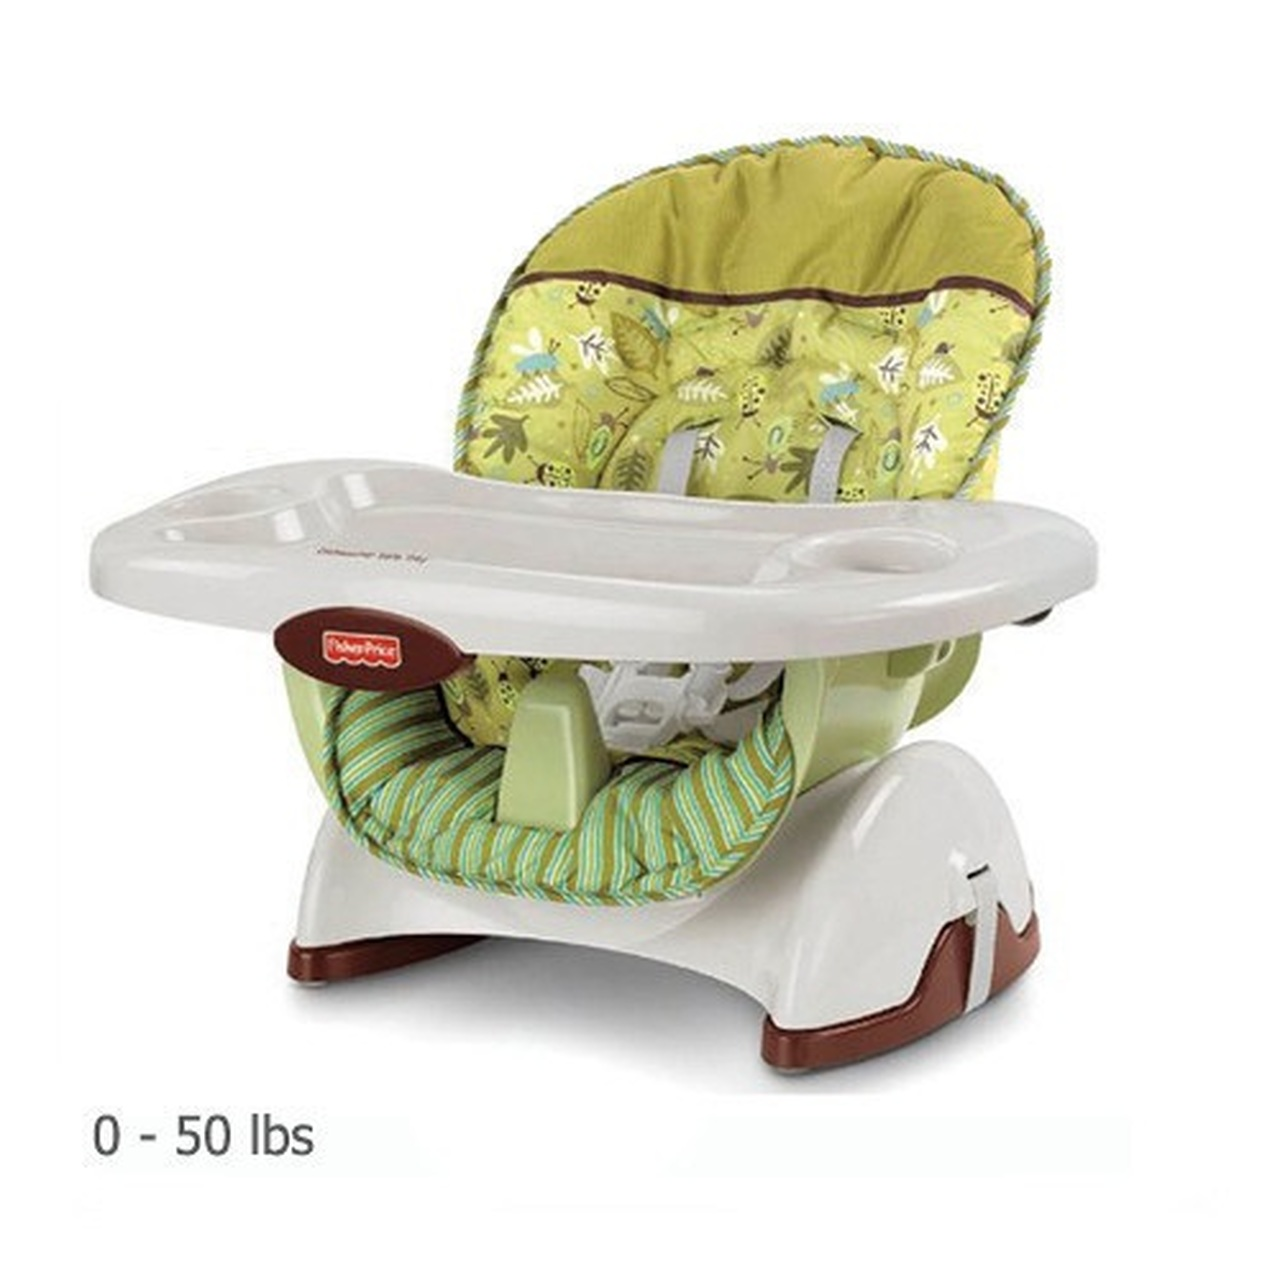 Fisher-Price SpaceSaver High Chair